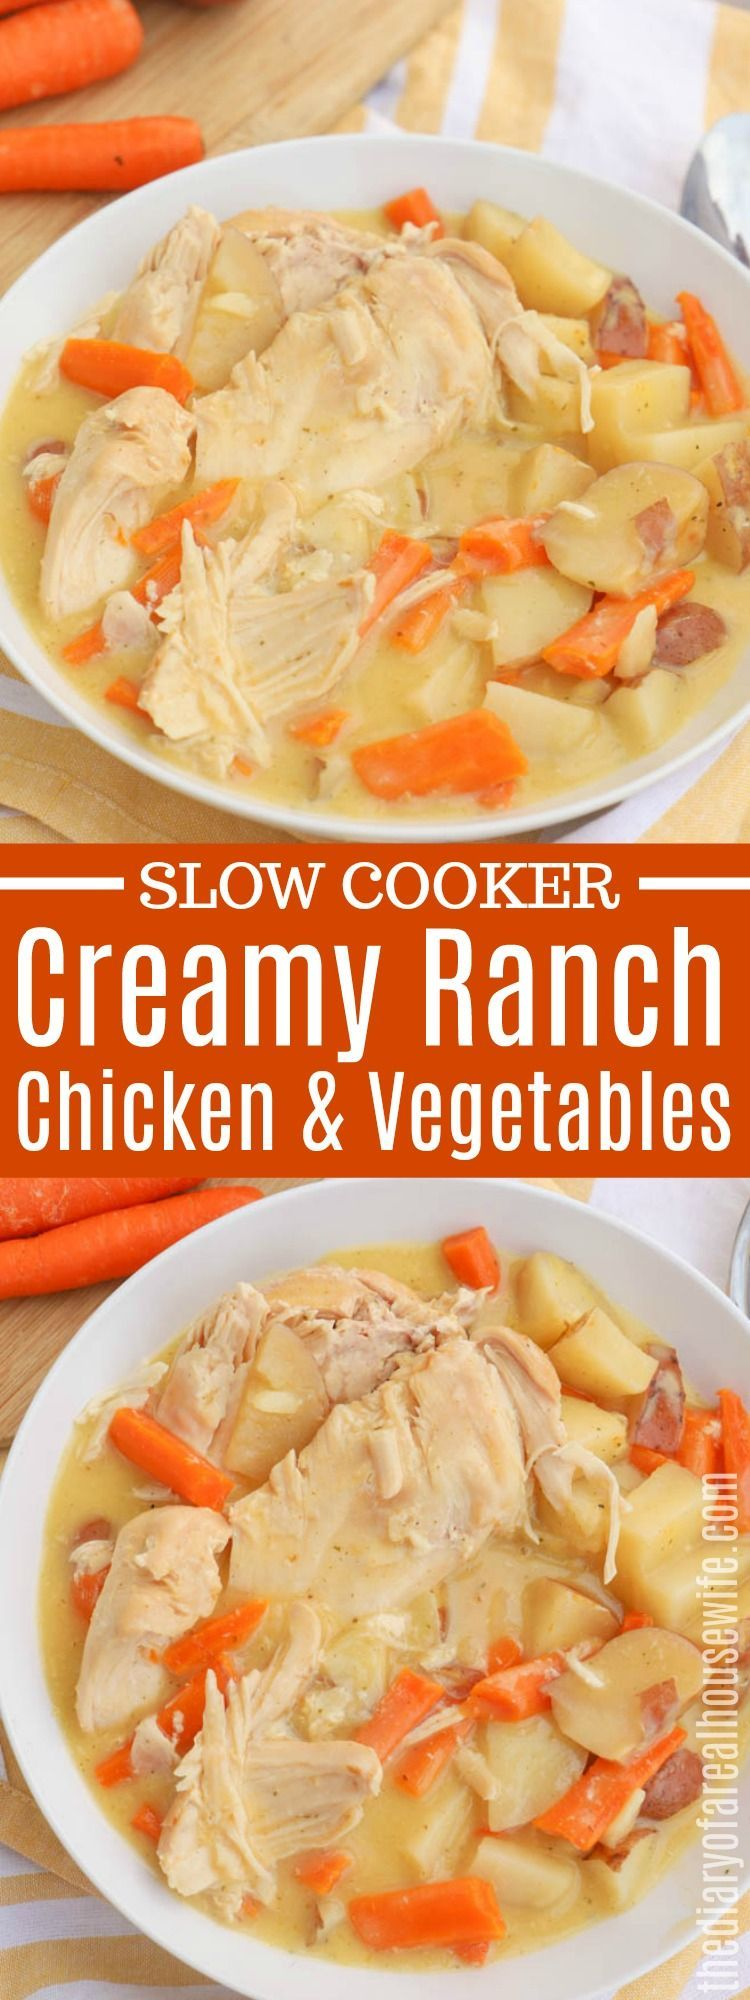 One of my favorite dinner recipes! Slow Cooker Creamy Ranch Chicken and Vegetables is the best #slowcooker #chicken #favoriterecipes